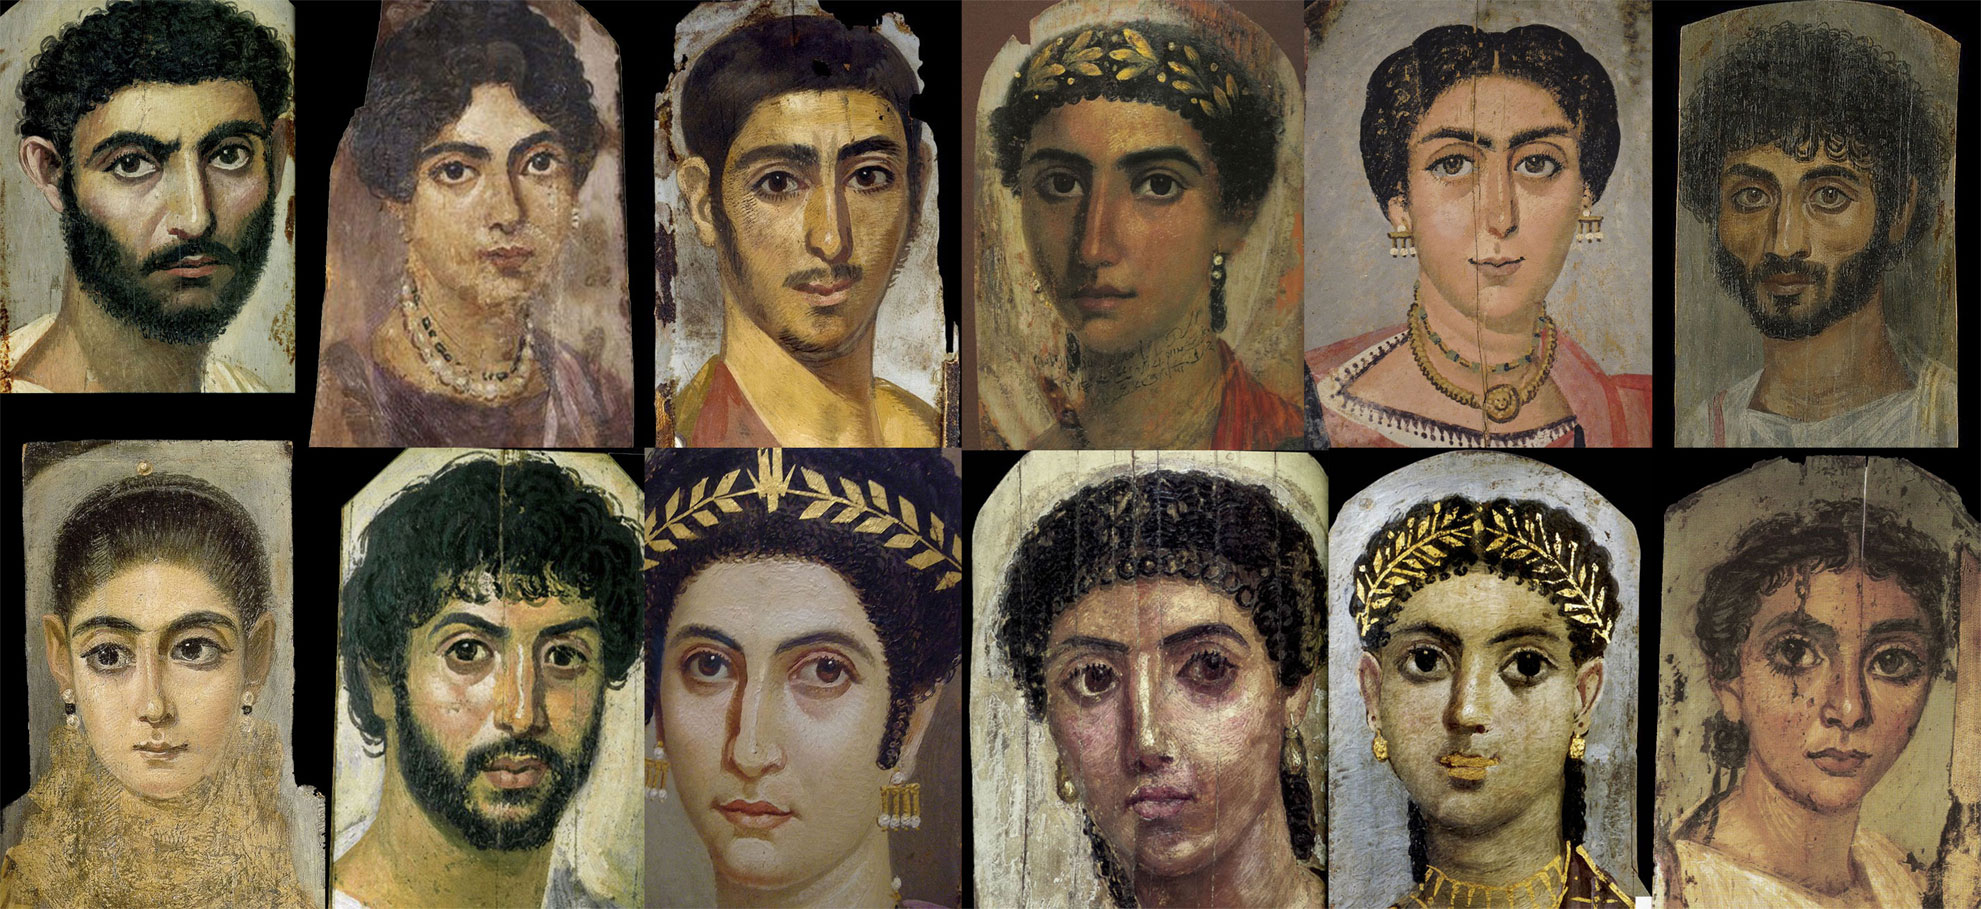 Ancient Egyptians were closer to Armenians than to Africans